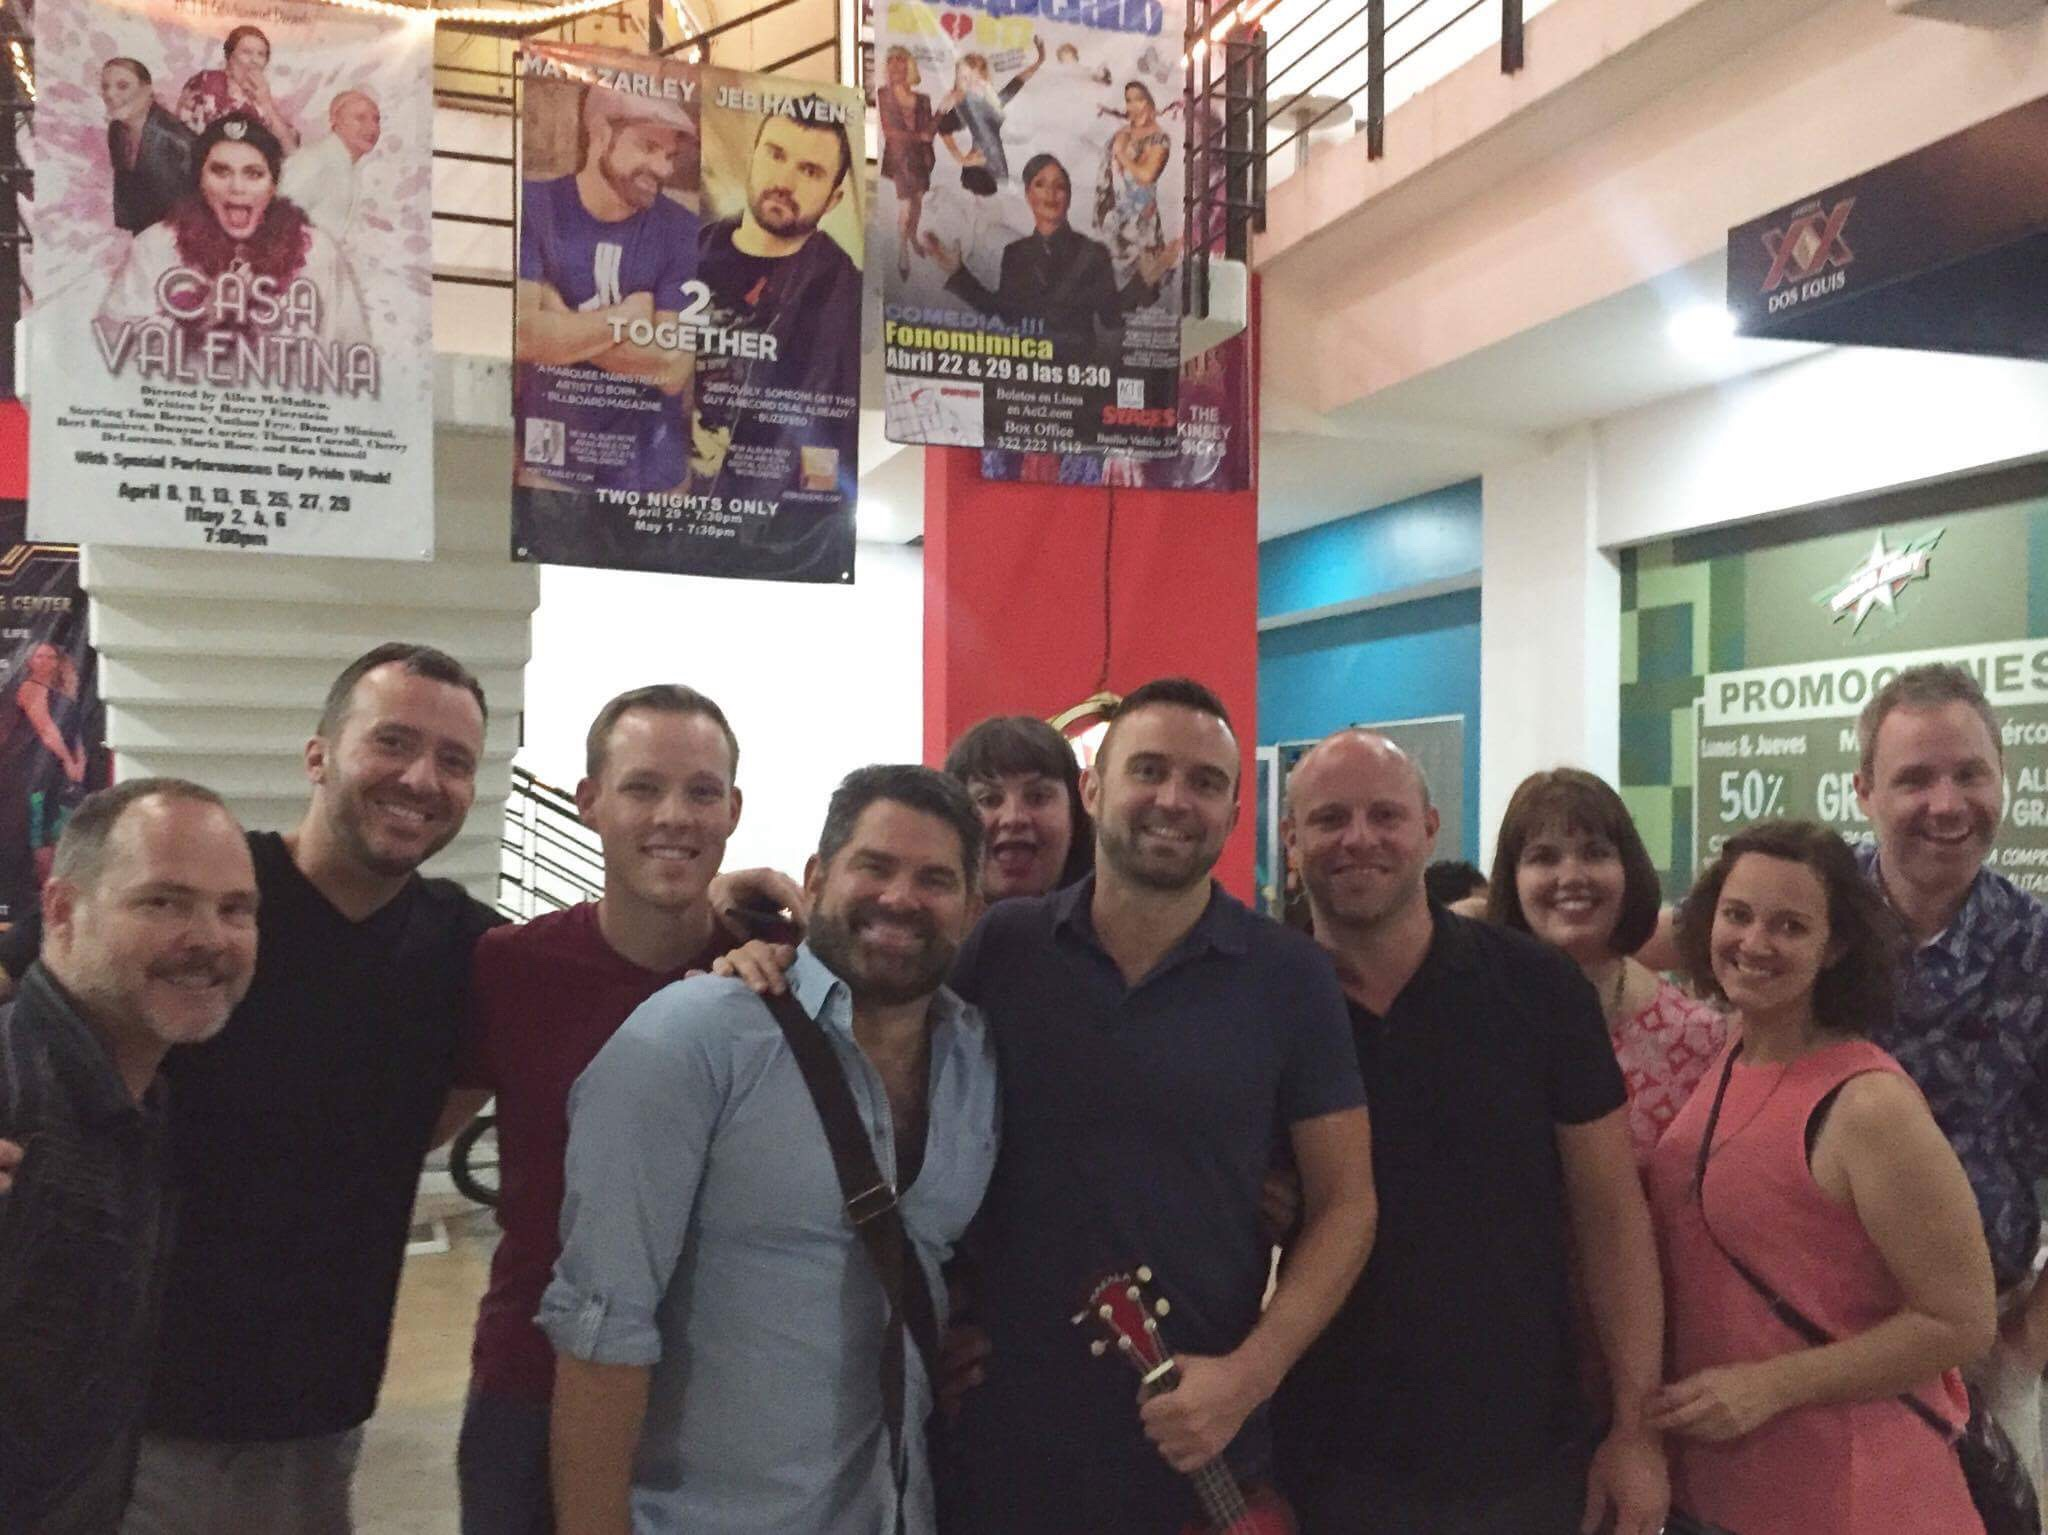 Our Puerto Vallarta gang before Jeb and Matt's show.